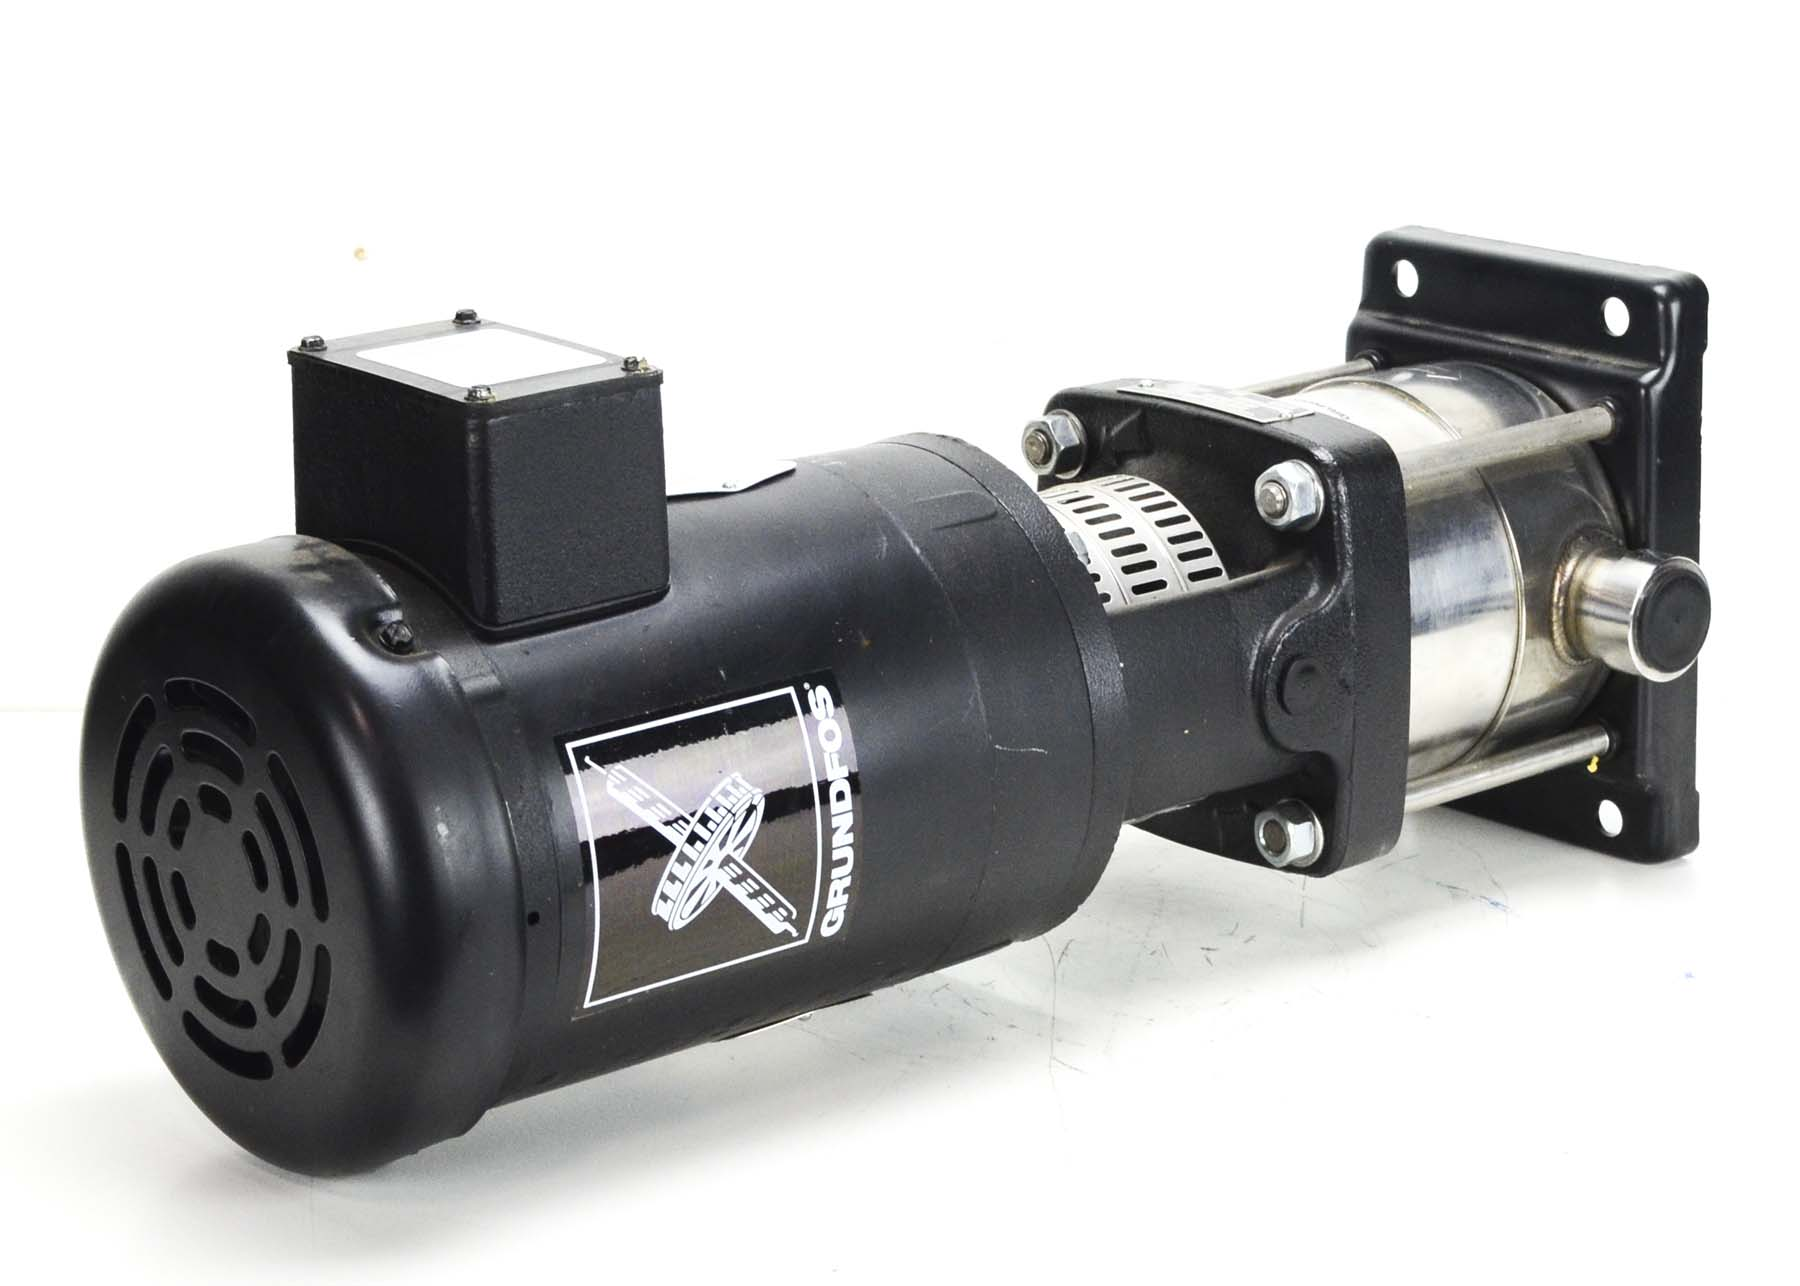 An overview of the Grundfos Pumps: Application and Benefits